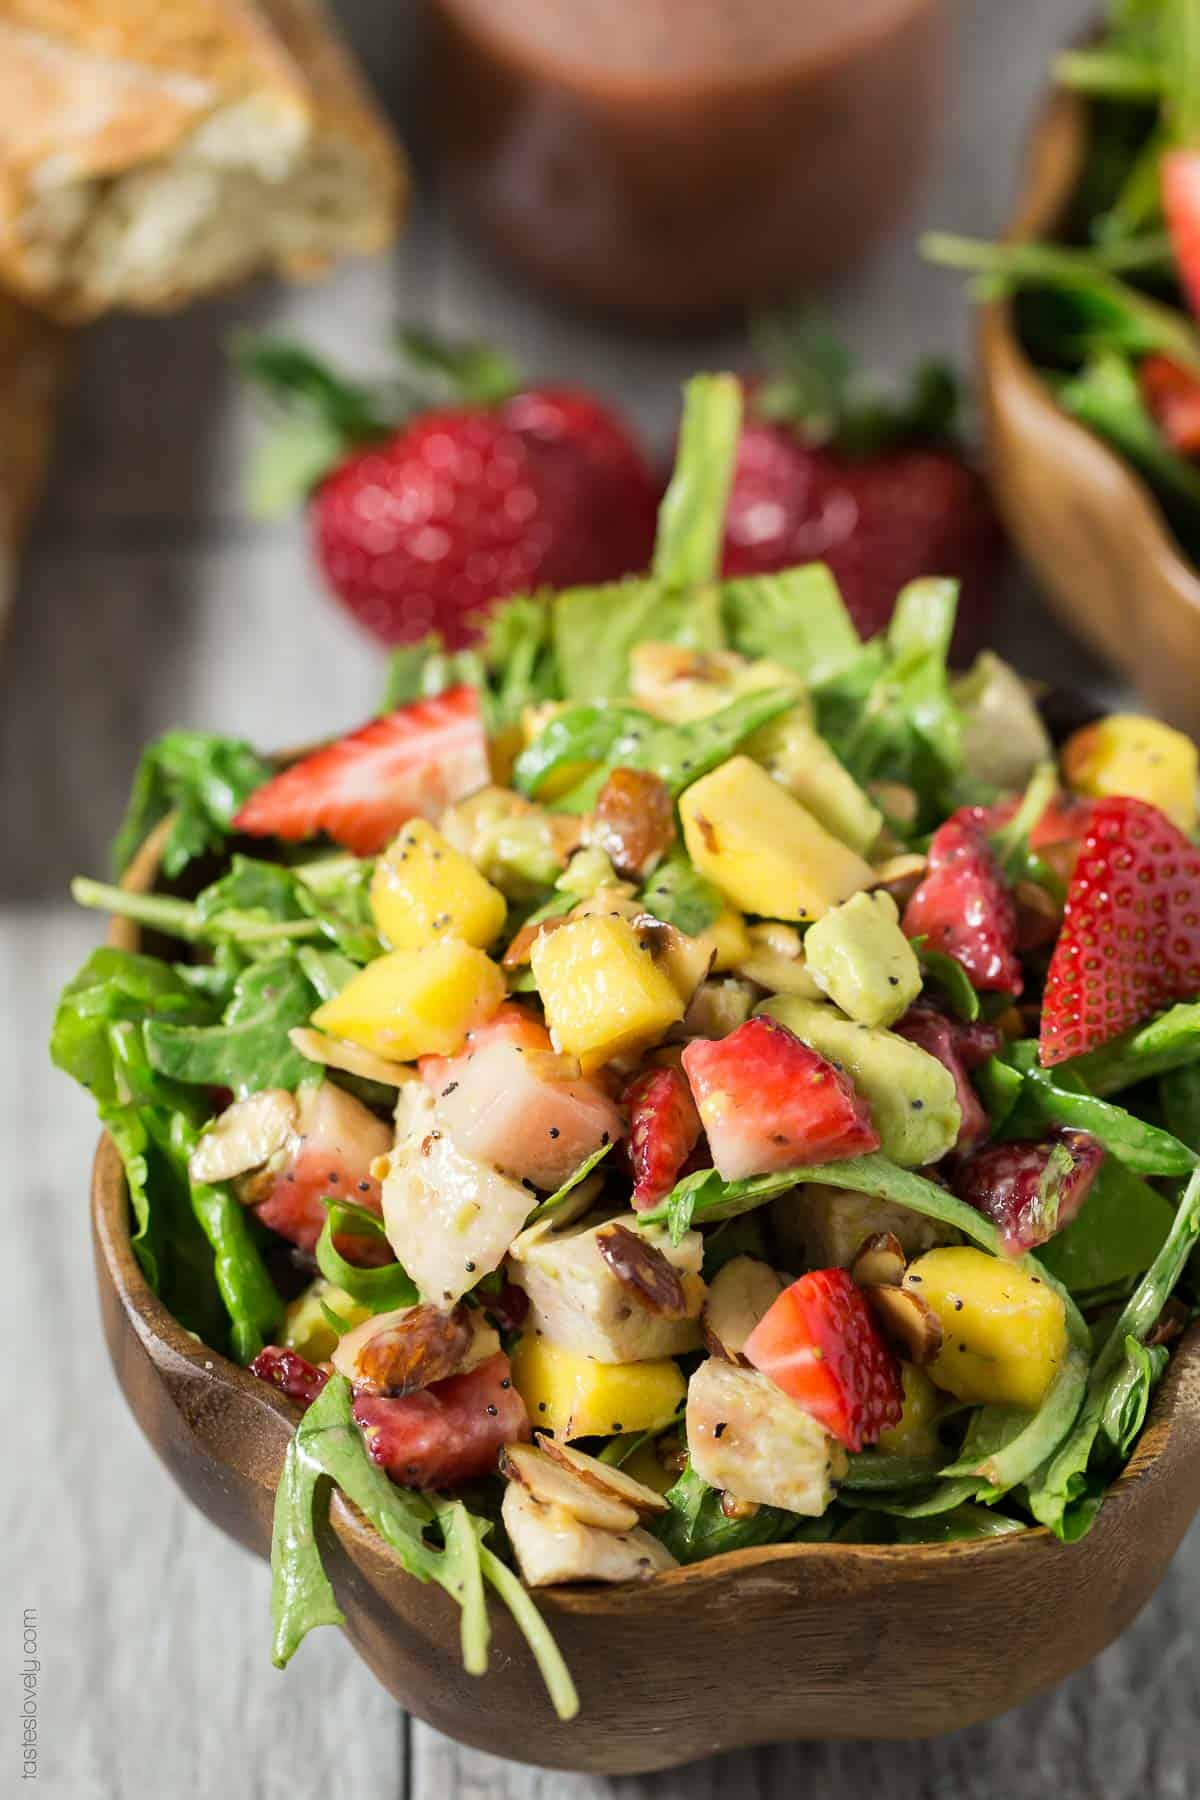 Paleo Strawberry Mango Salad with Chicken - a healthy and delicious paleo, gluten free and dairy free salad for lunch or dinner!